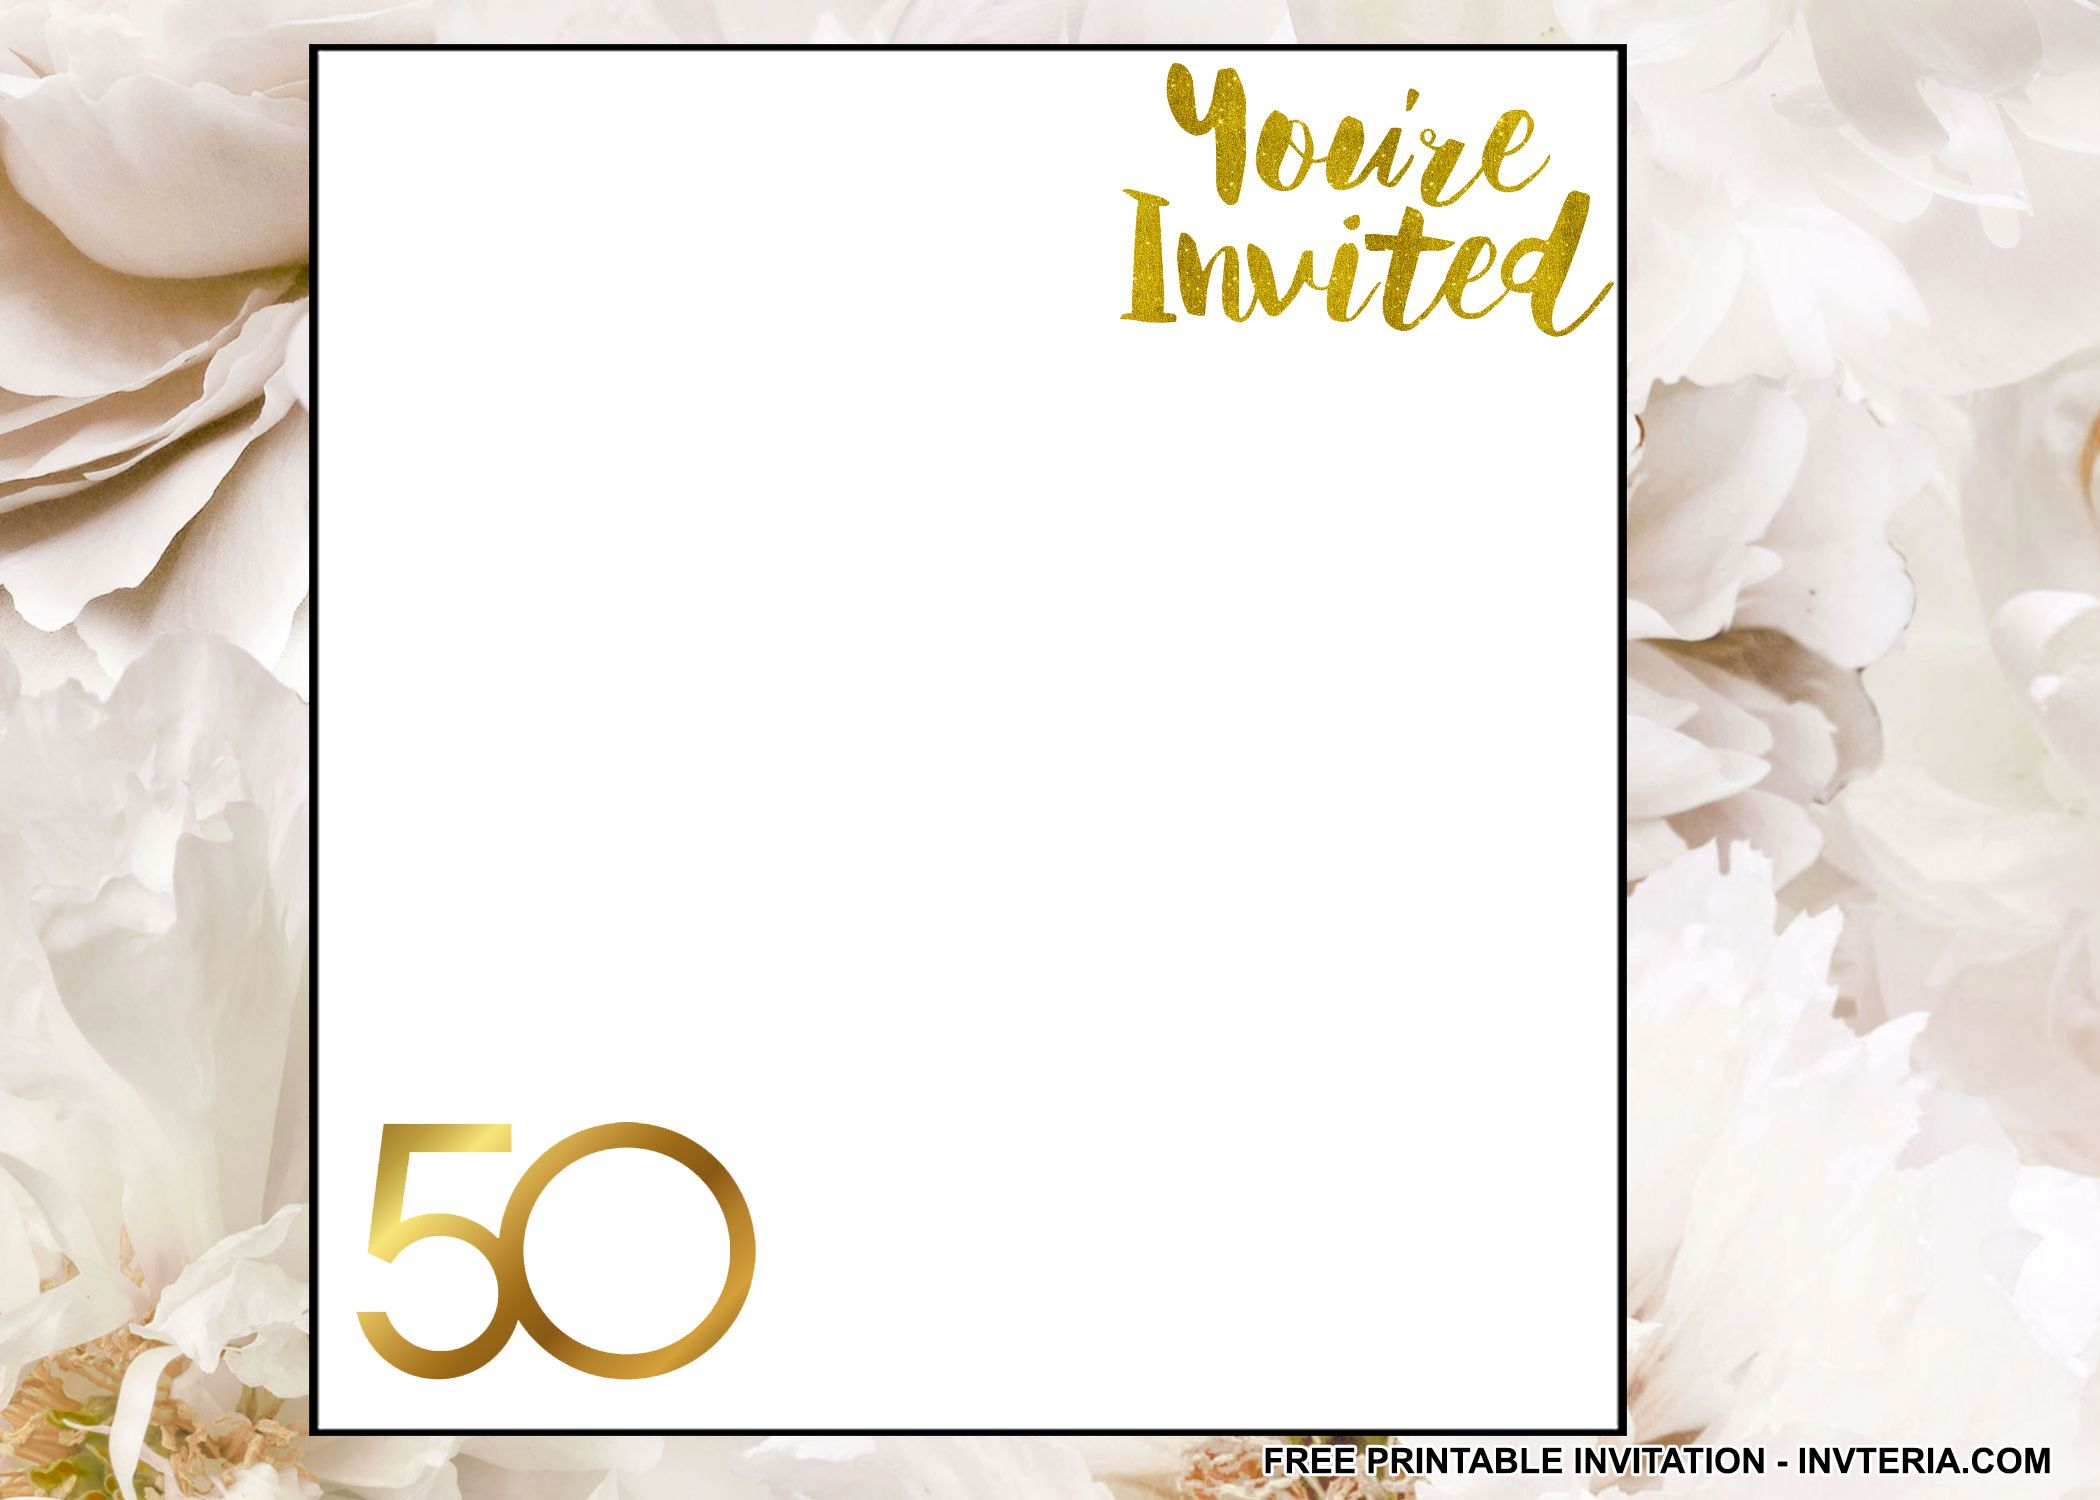 AWESOME FREE 50TH BIRTHDAY INVITATION SAYINGS IDEA